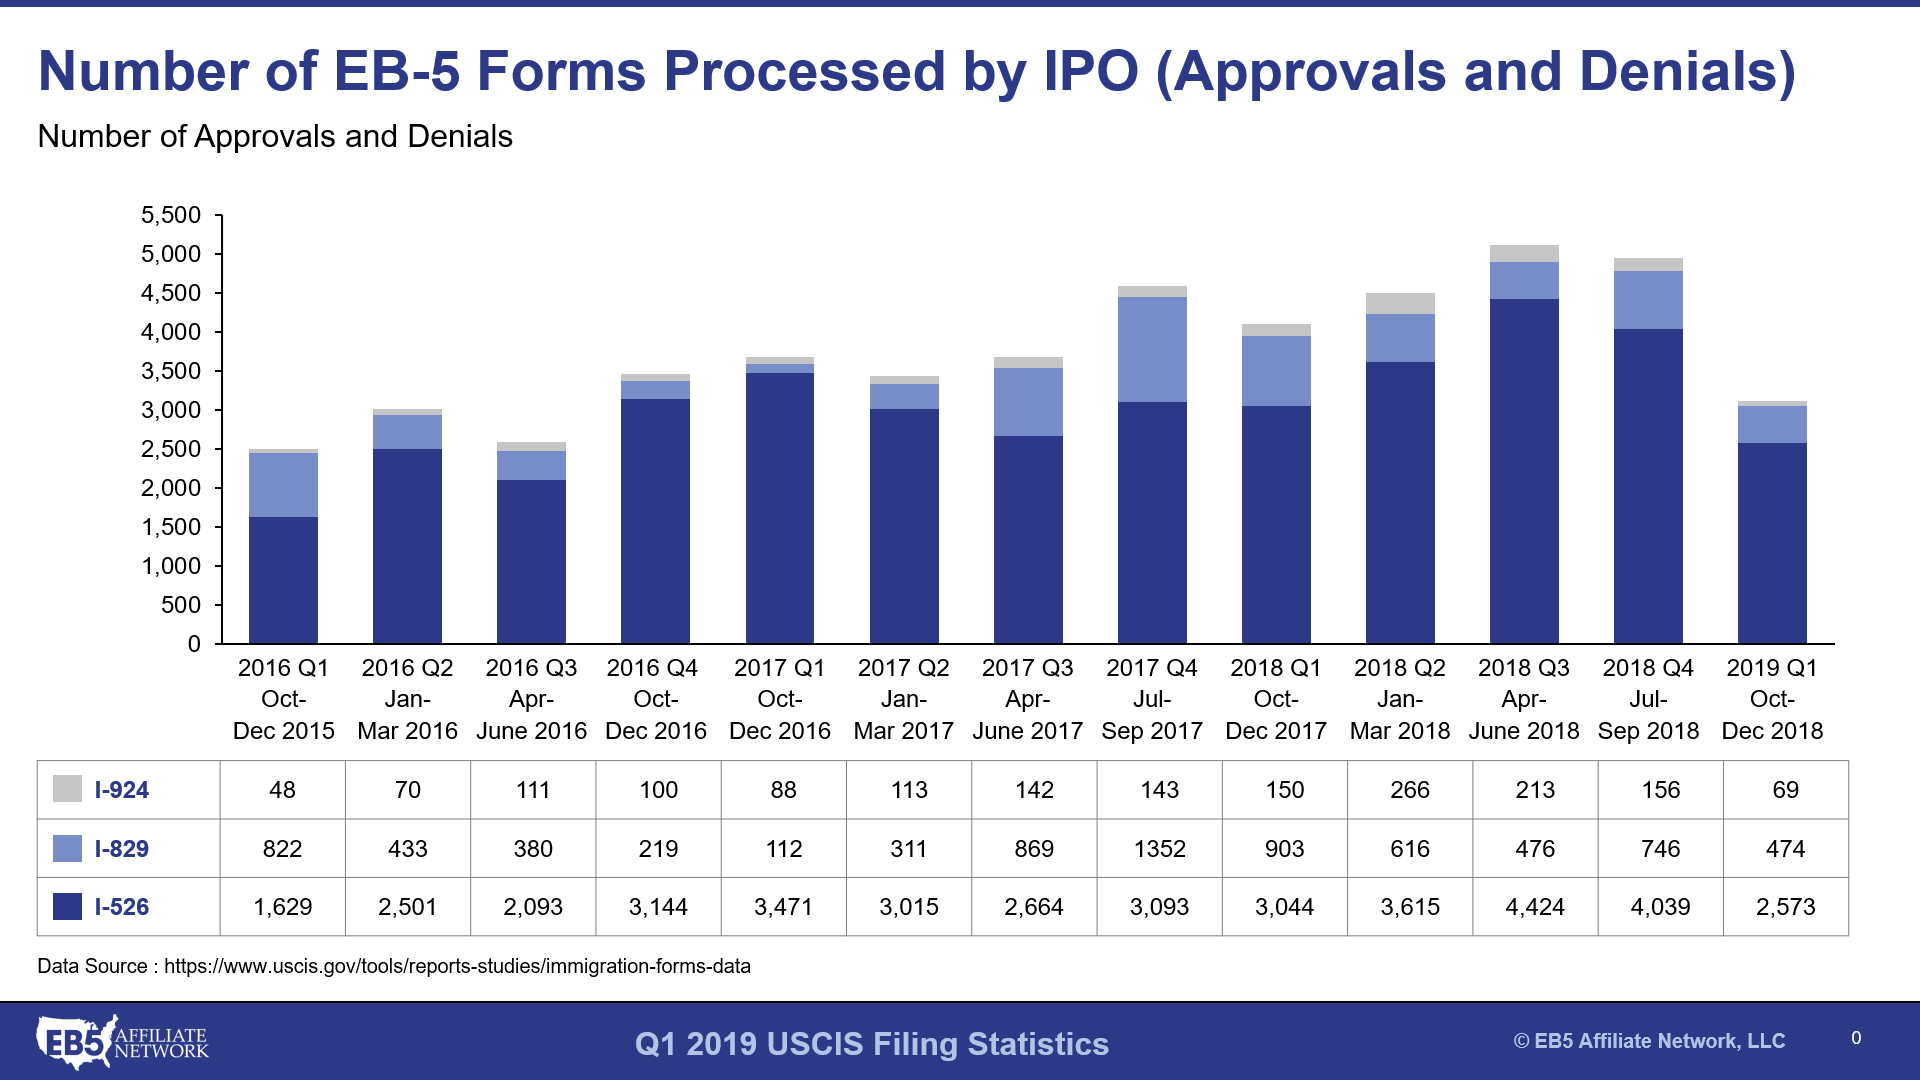 Q1 FY2019 USCIS Statistics for EB-5 Petition Processing